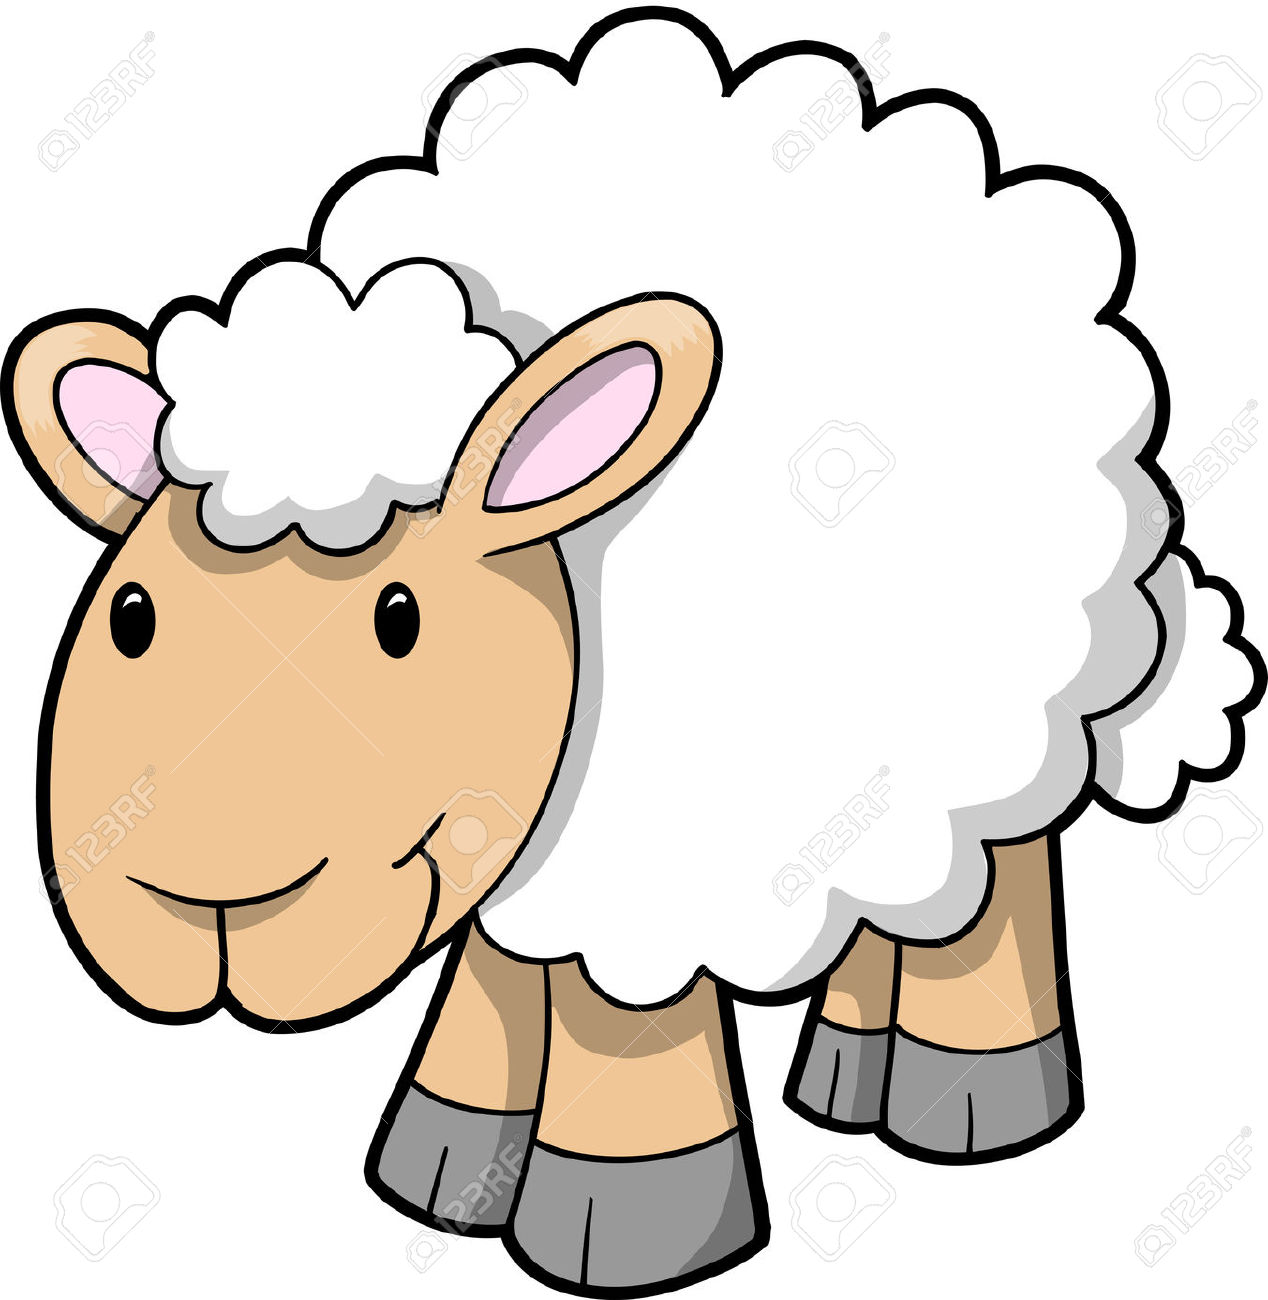 Sheep clipart #2, Download drawings